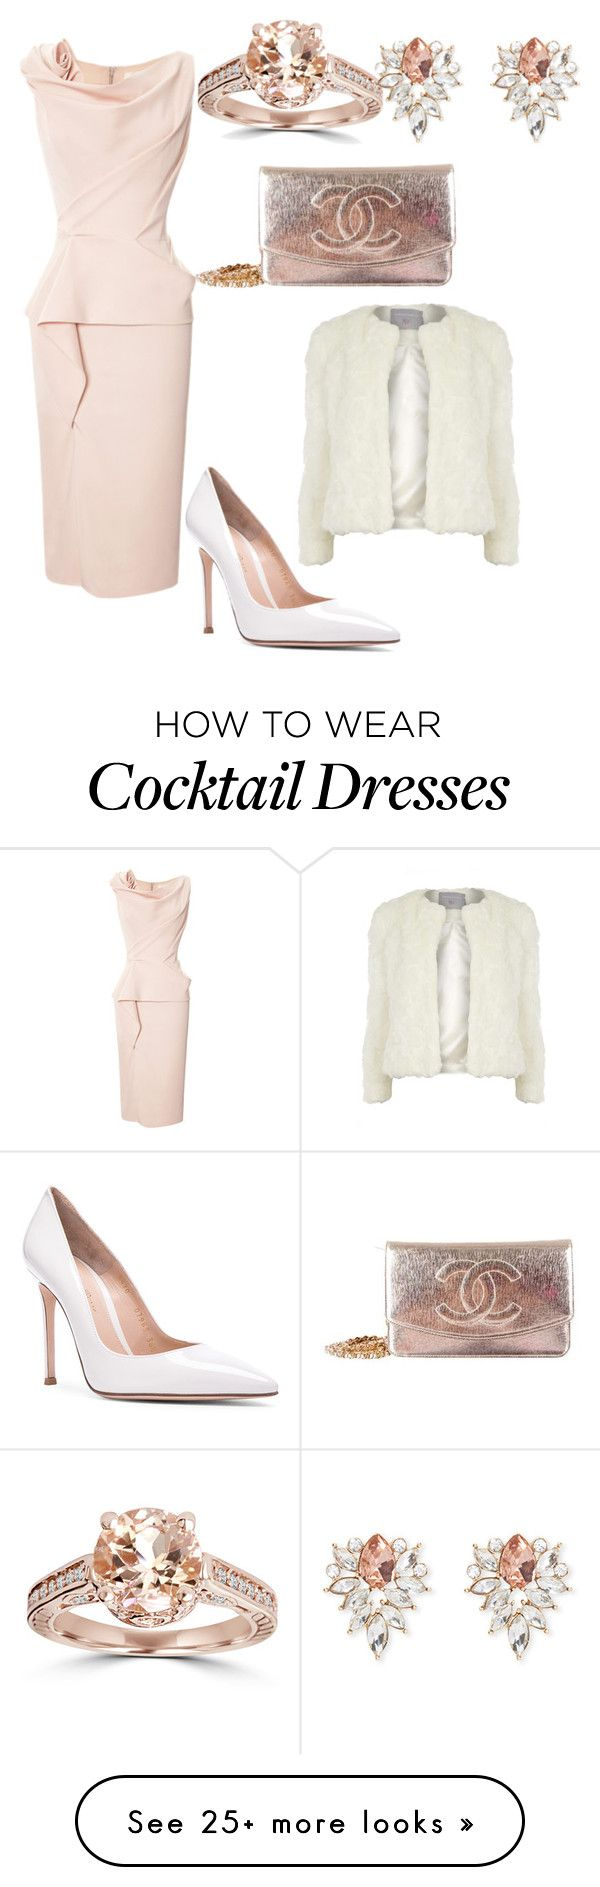 """Delicate or Innocent"" by julia-ismerim on Polyvore featuring Marchesa, Gianvito Rossi, Chanel, Forever 21 and Dorothy Perkins"